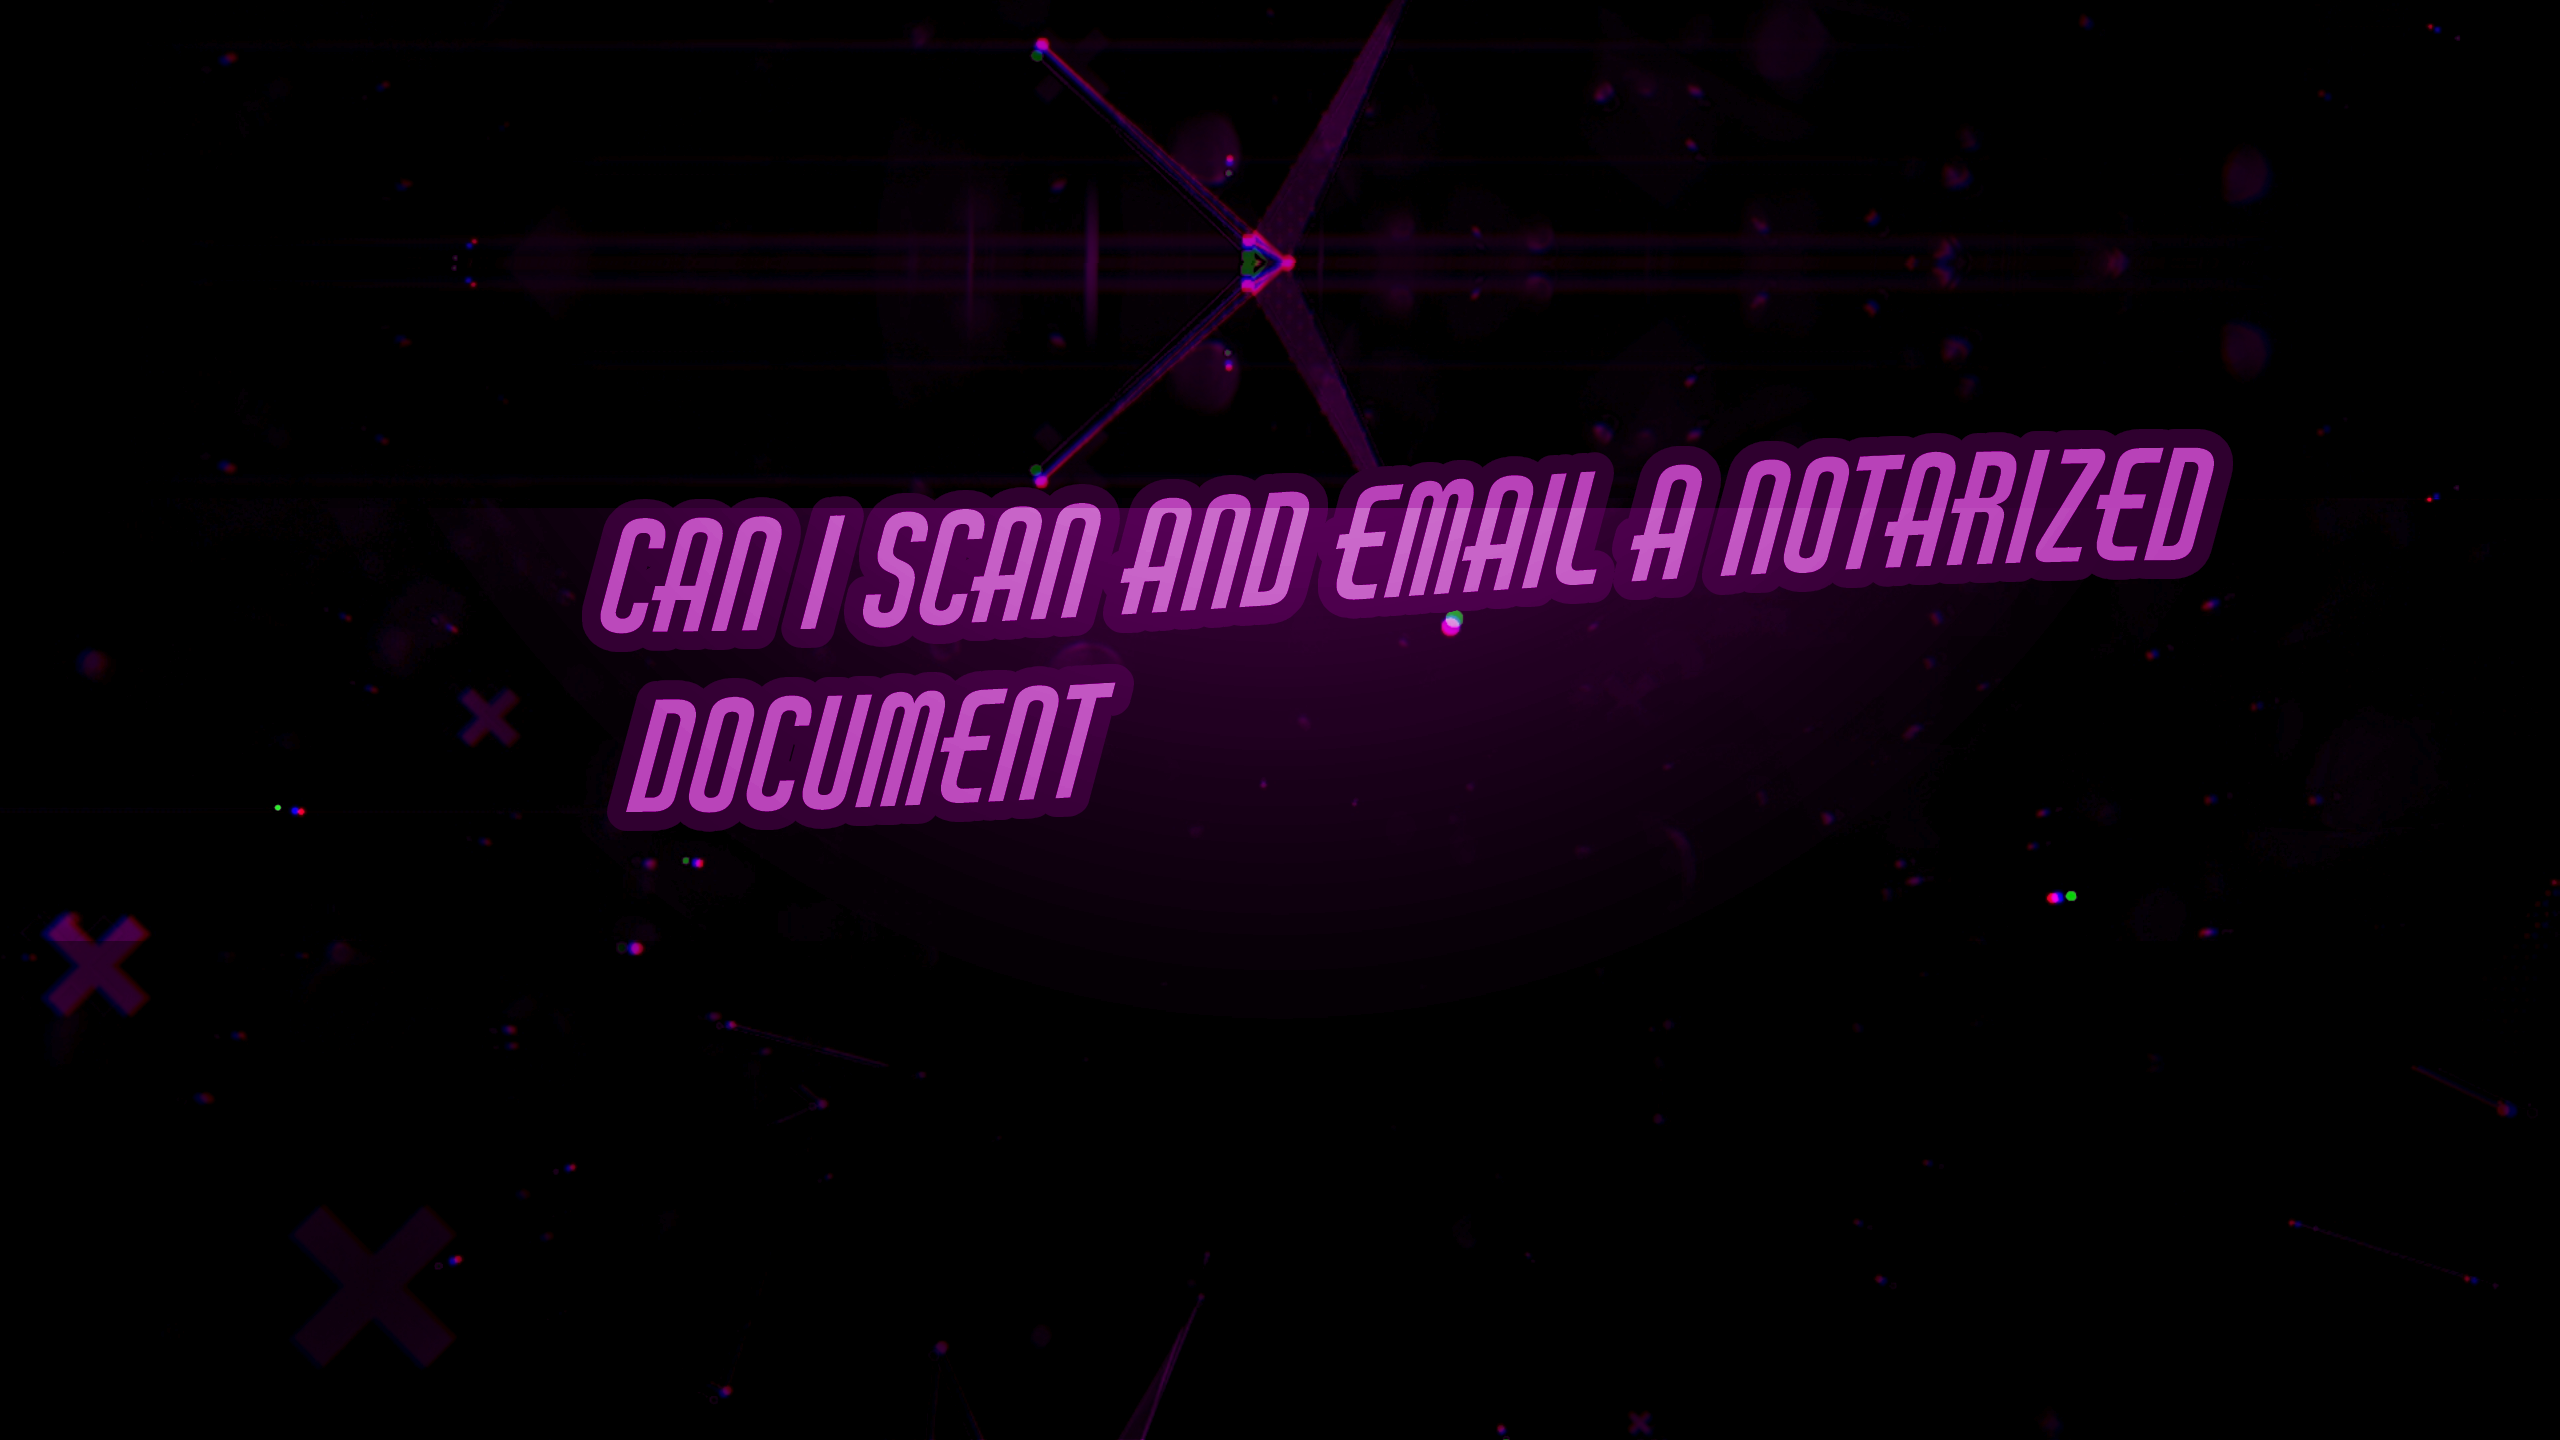 Where To Scan And Email